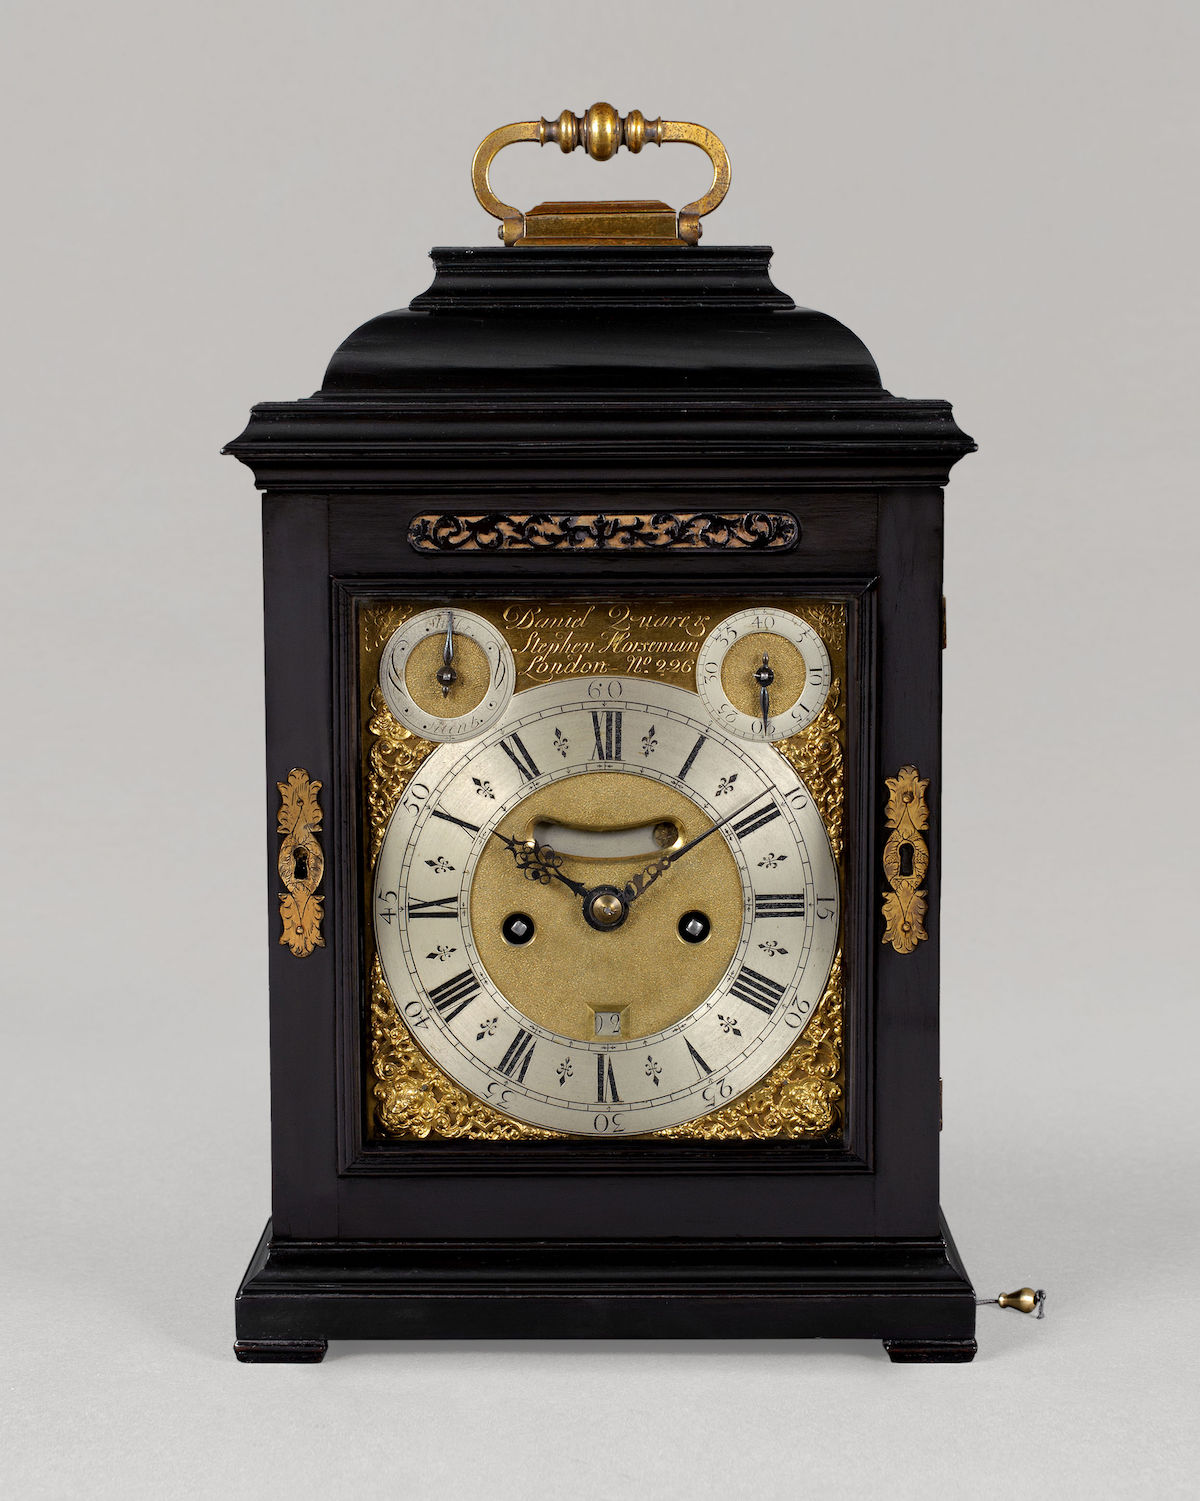 DANIEL QUARE & STEPHEN HORSEMAN, N° 266. A GEORGE I PERIOD QUARTER-REPEATING SPRING TABLE CLOCK BY ONE OF THE MOST CELEBRATED PARTNERSHIPS OF THE EARLY EIGHTEENTH CENTURY.